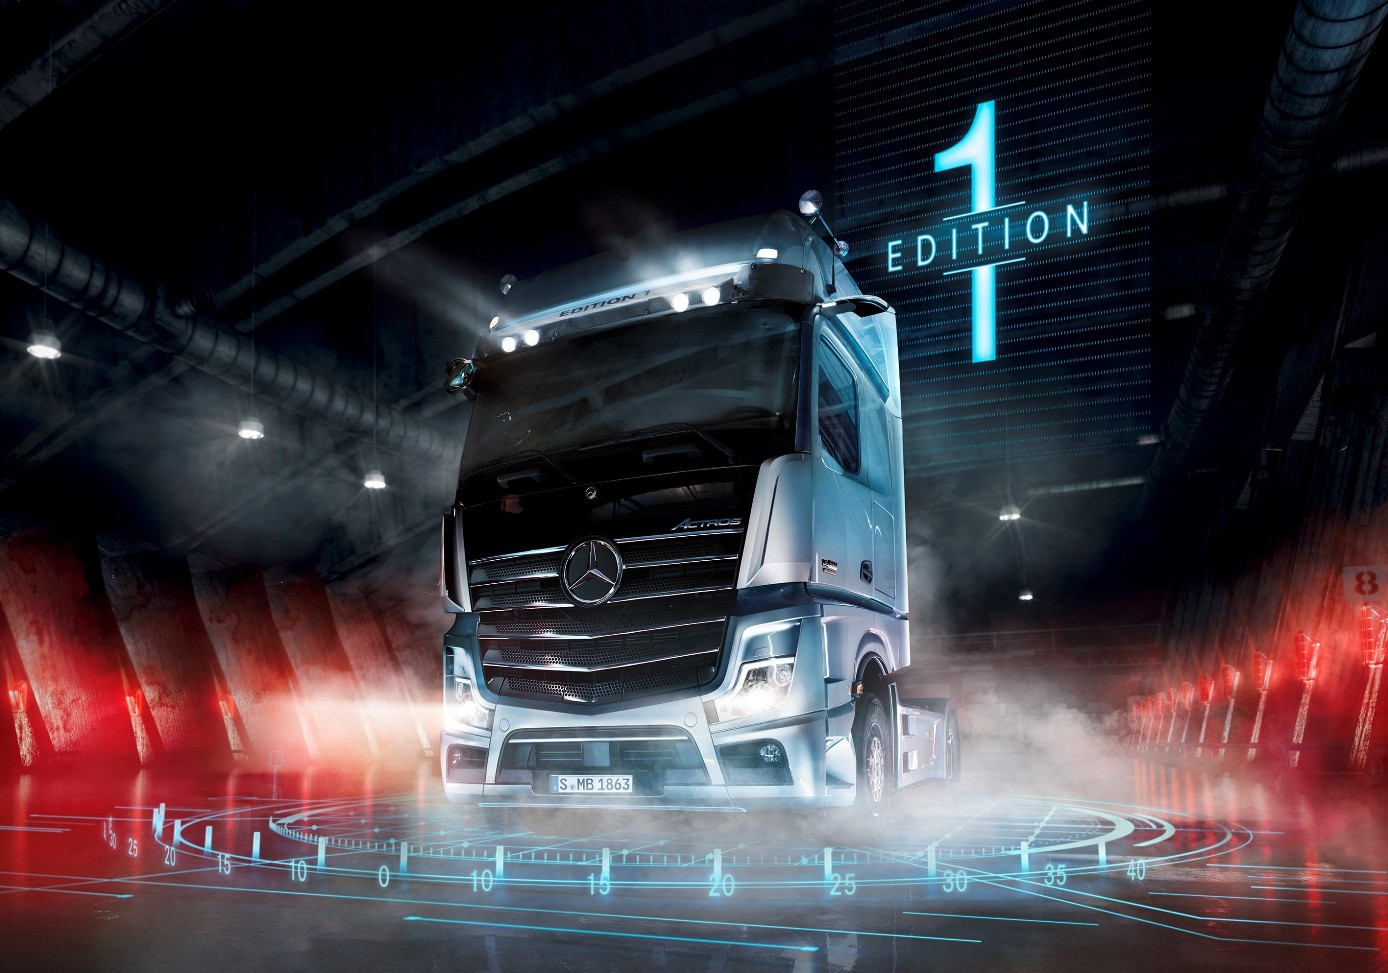 Toyota Route 4 >> Actros Edition 1 (1) - Export and Freight